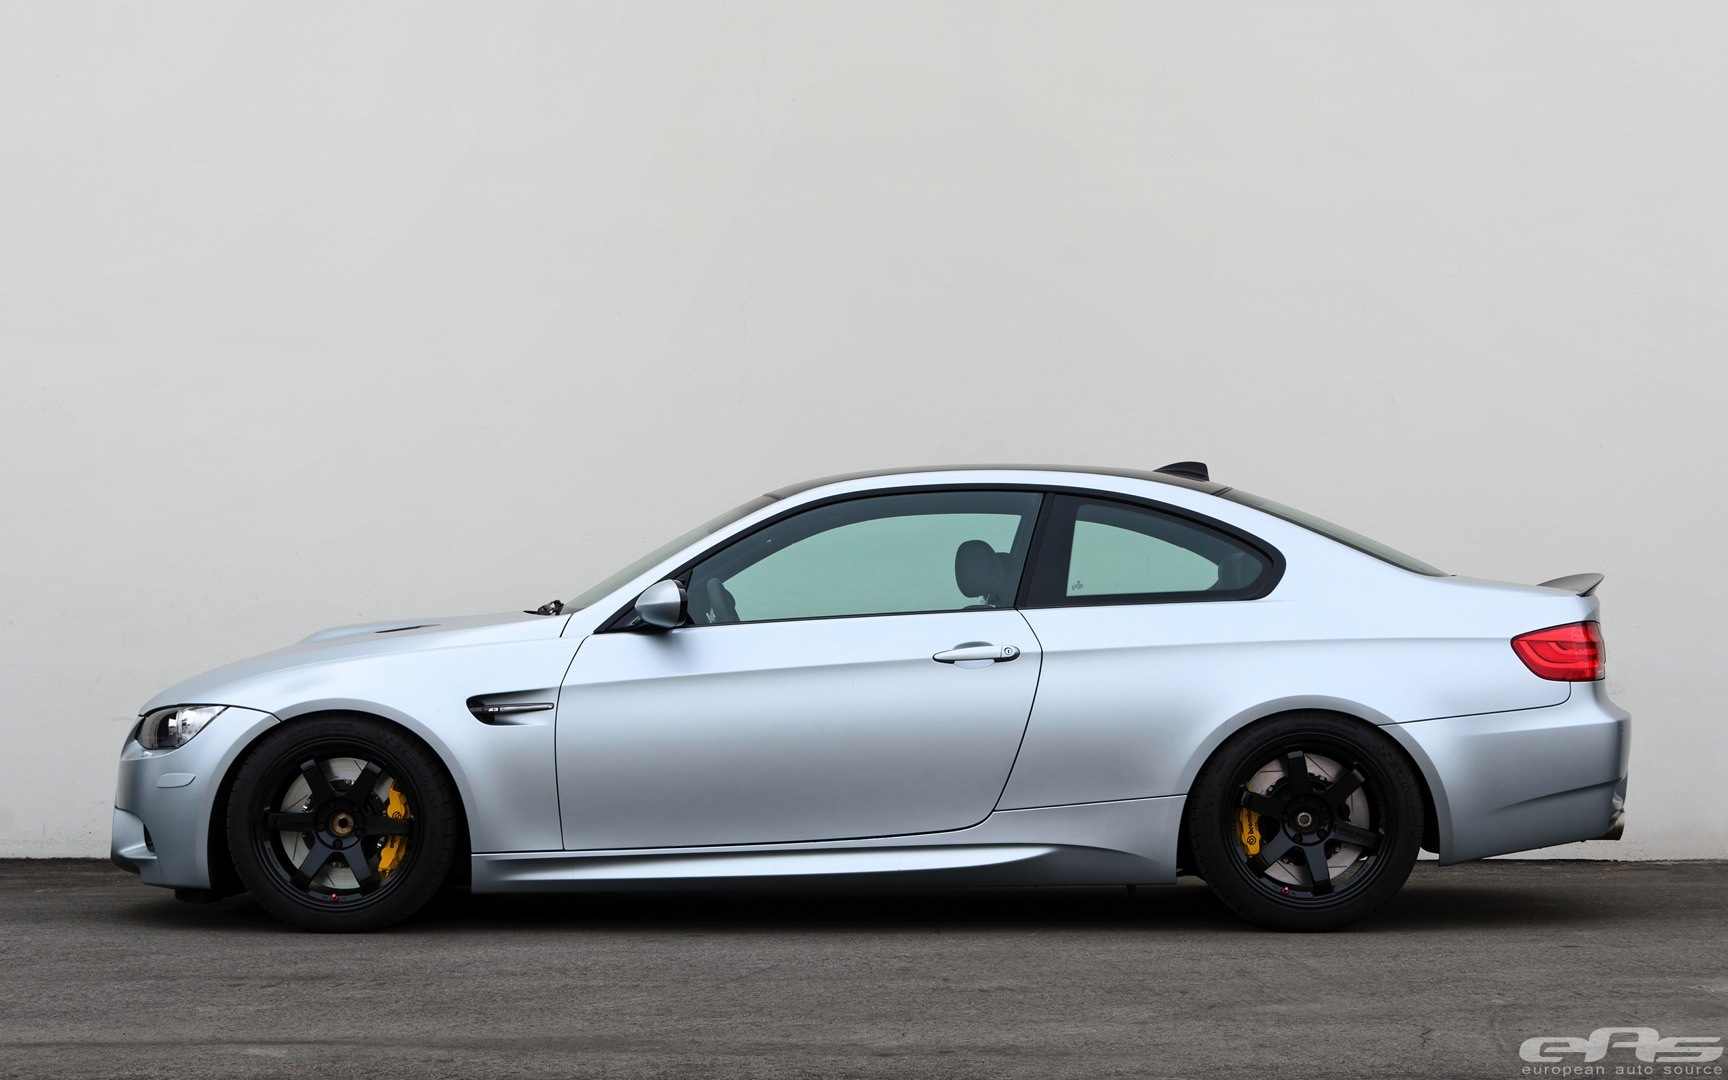 bmw e92 m3 gets buff at eas autoevolution. Black Bedroom Furniture Sets. Home Design Ideas